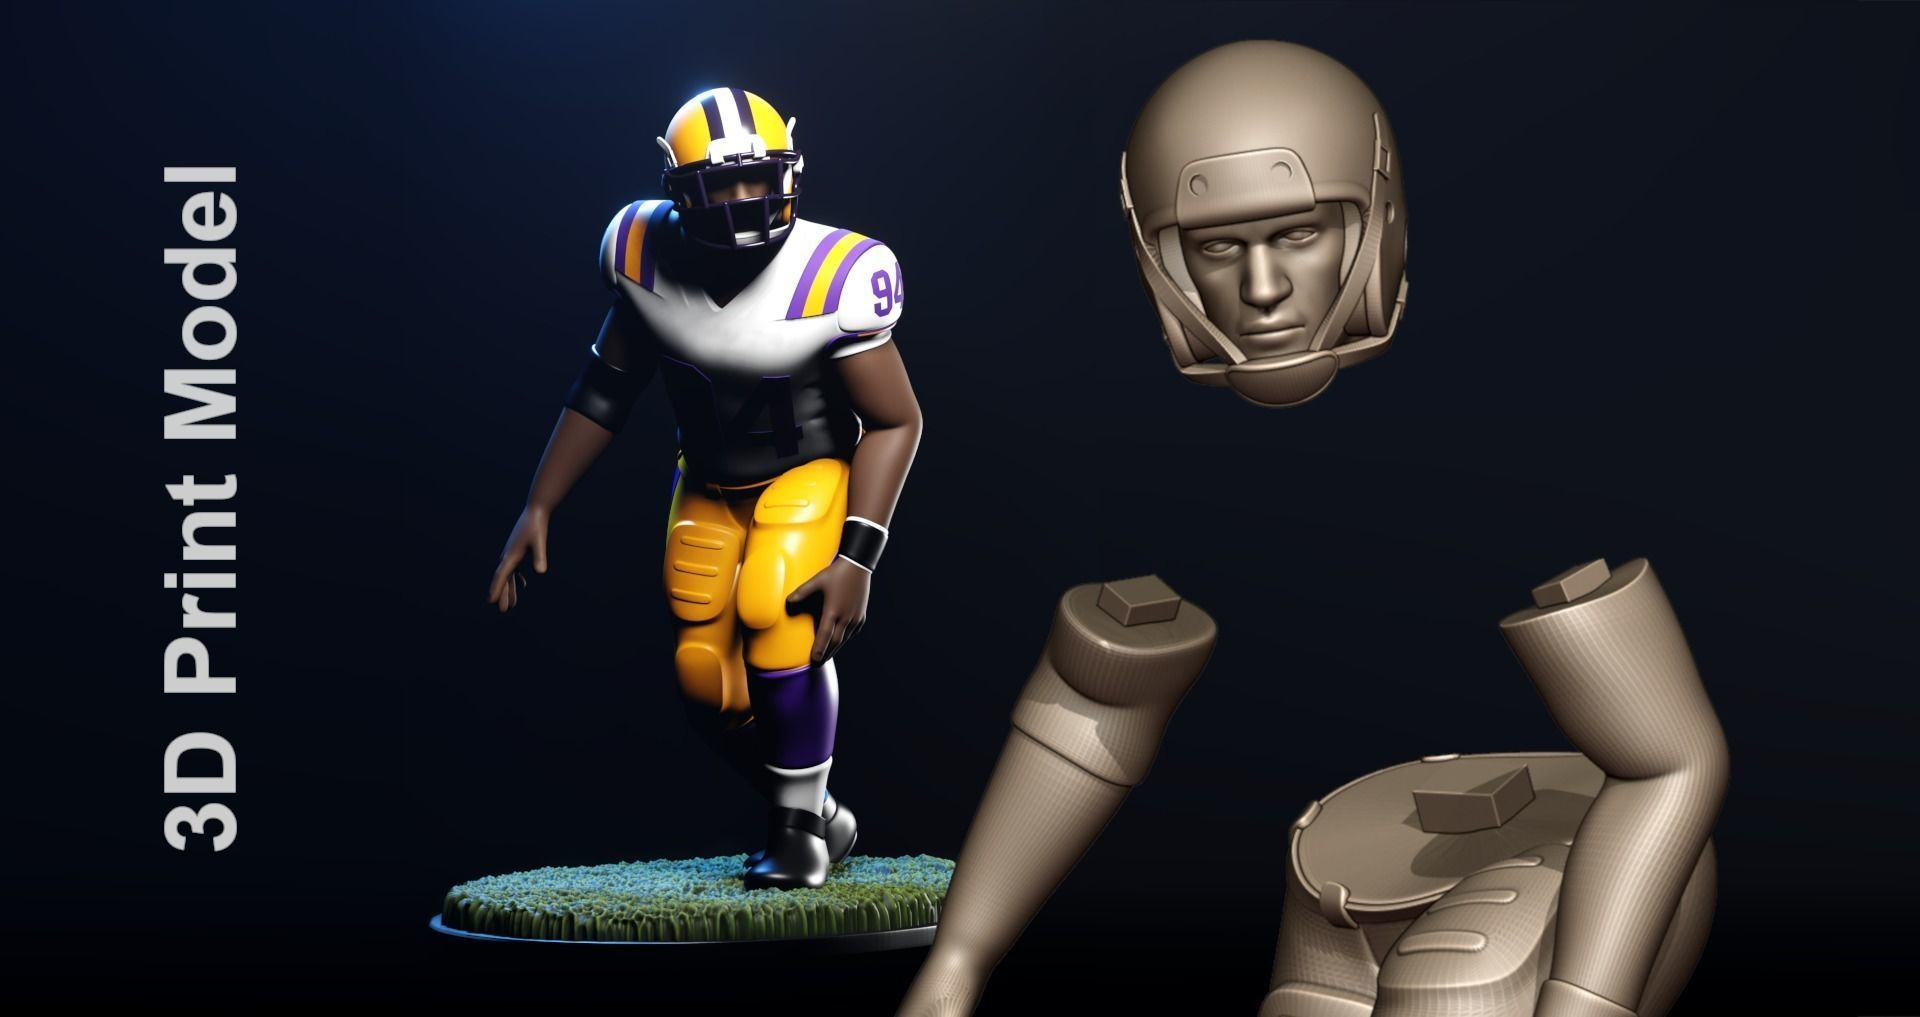 Football Player Figurine 2-Point Stance